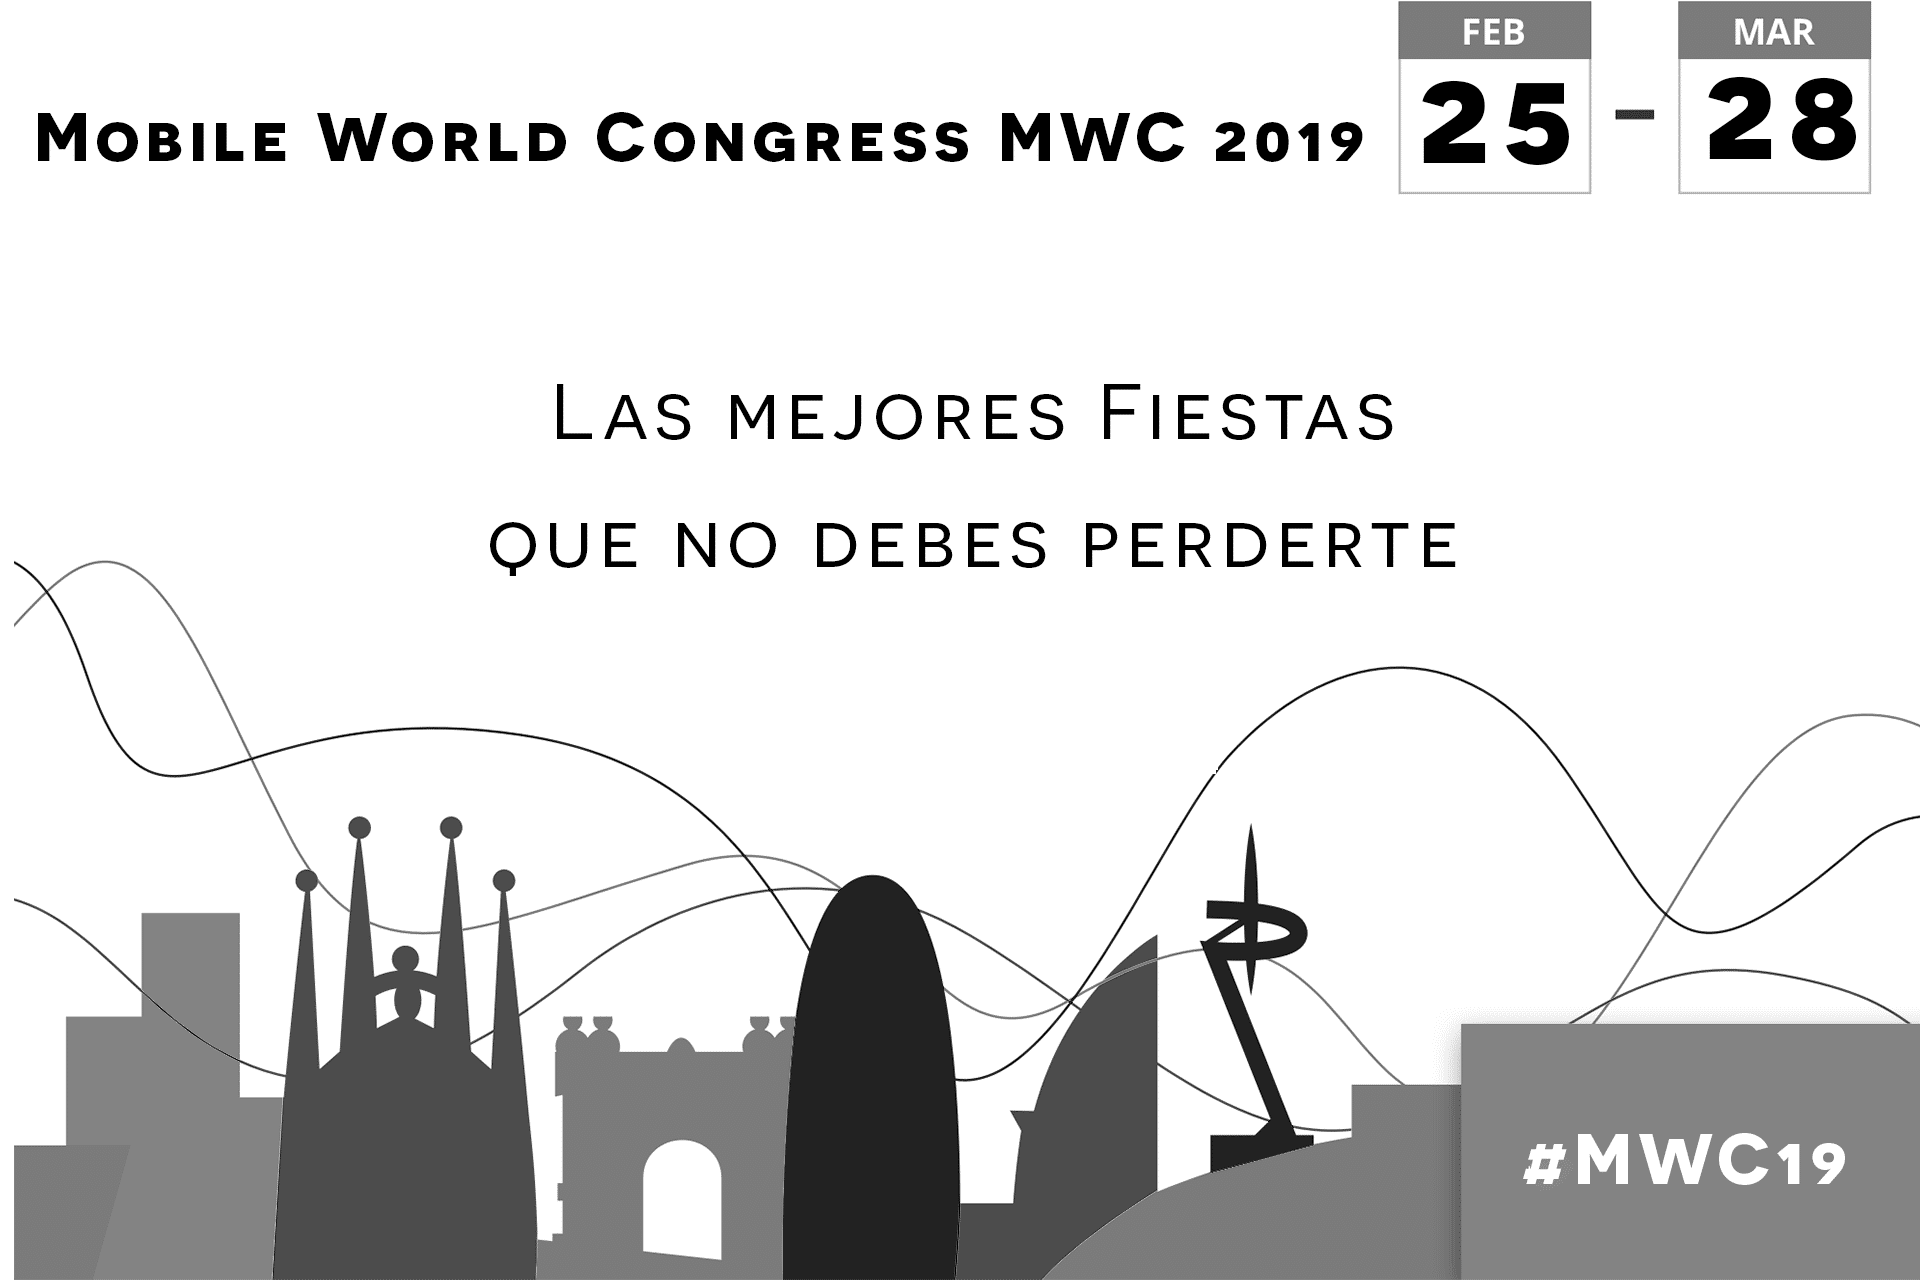 mobile-world-congress-2019-parties (1)